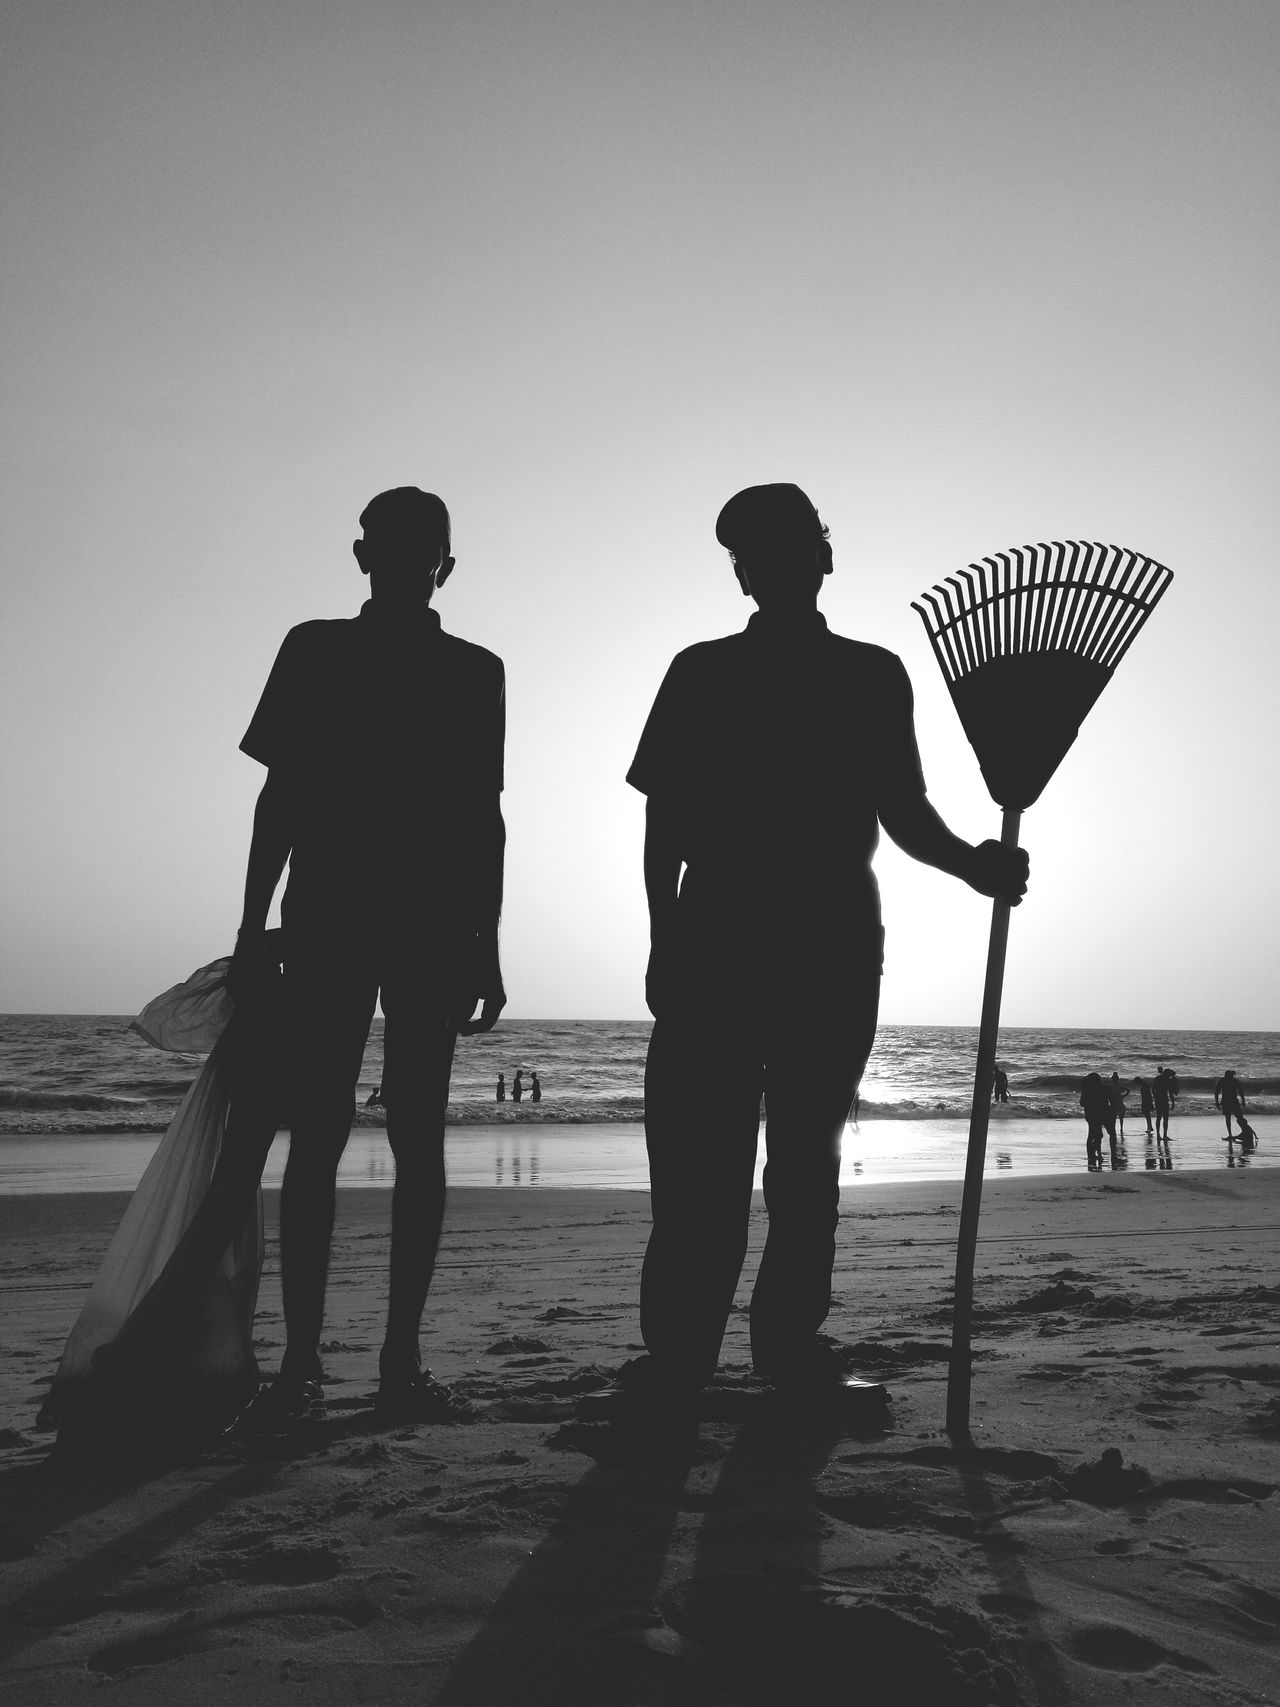 Silhouette Only Men Beach Standing Adult Men Adults Only Full Length People Sand Vacations Two People Sea Sky Outdoors Day Water Nature Travel Destinations Workeronduty Worker In Action Workeronbreak Working Out Working Hands Workplace